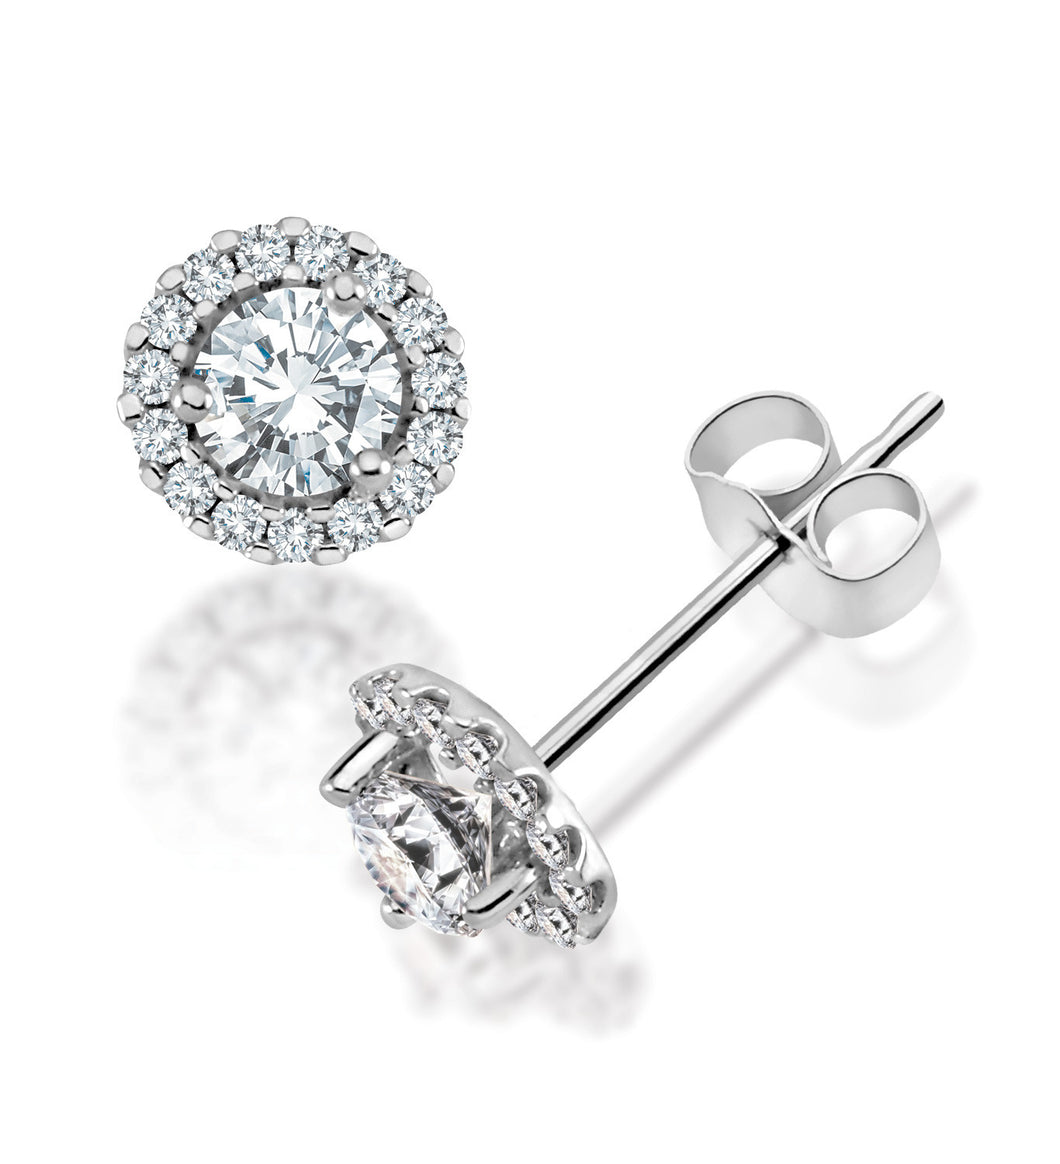 14Kt White Gold Canadian Diamond Halo Earrings